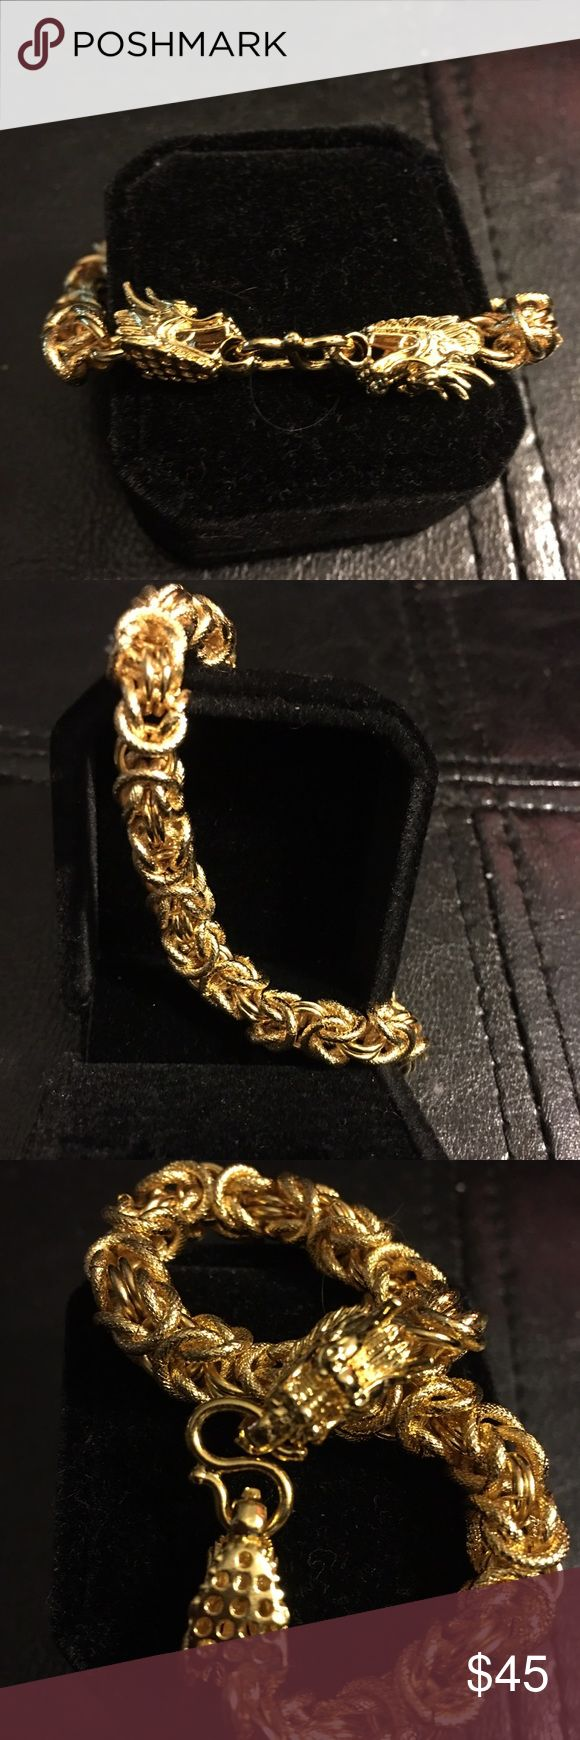 Men's 18K Gold Plated Cool Double Dragon Bracelet Men's 18K Gold Plated Cool Domineering Double Dragon Clasp Bracelet Queen Esther Etc Accessories Jewelry